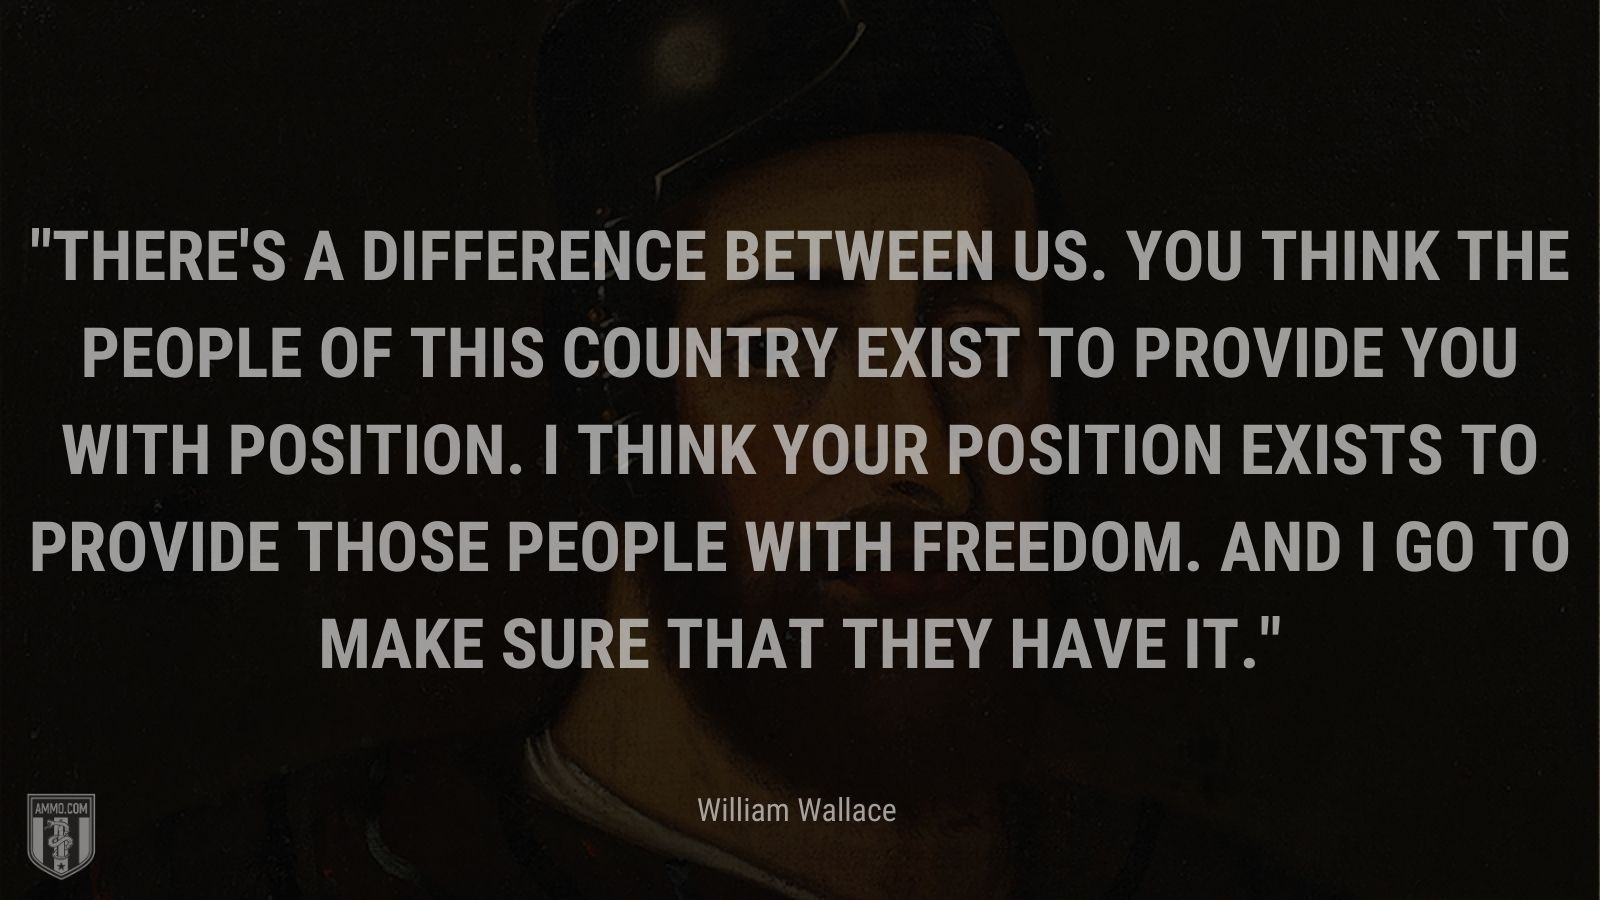 """""""There's a difference between us. You think the people of this country exist to provide you with position. I think your position exists to provide those people with freedom. And I go to make sure that they have it. - William Wallace"""